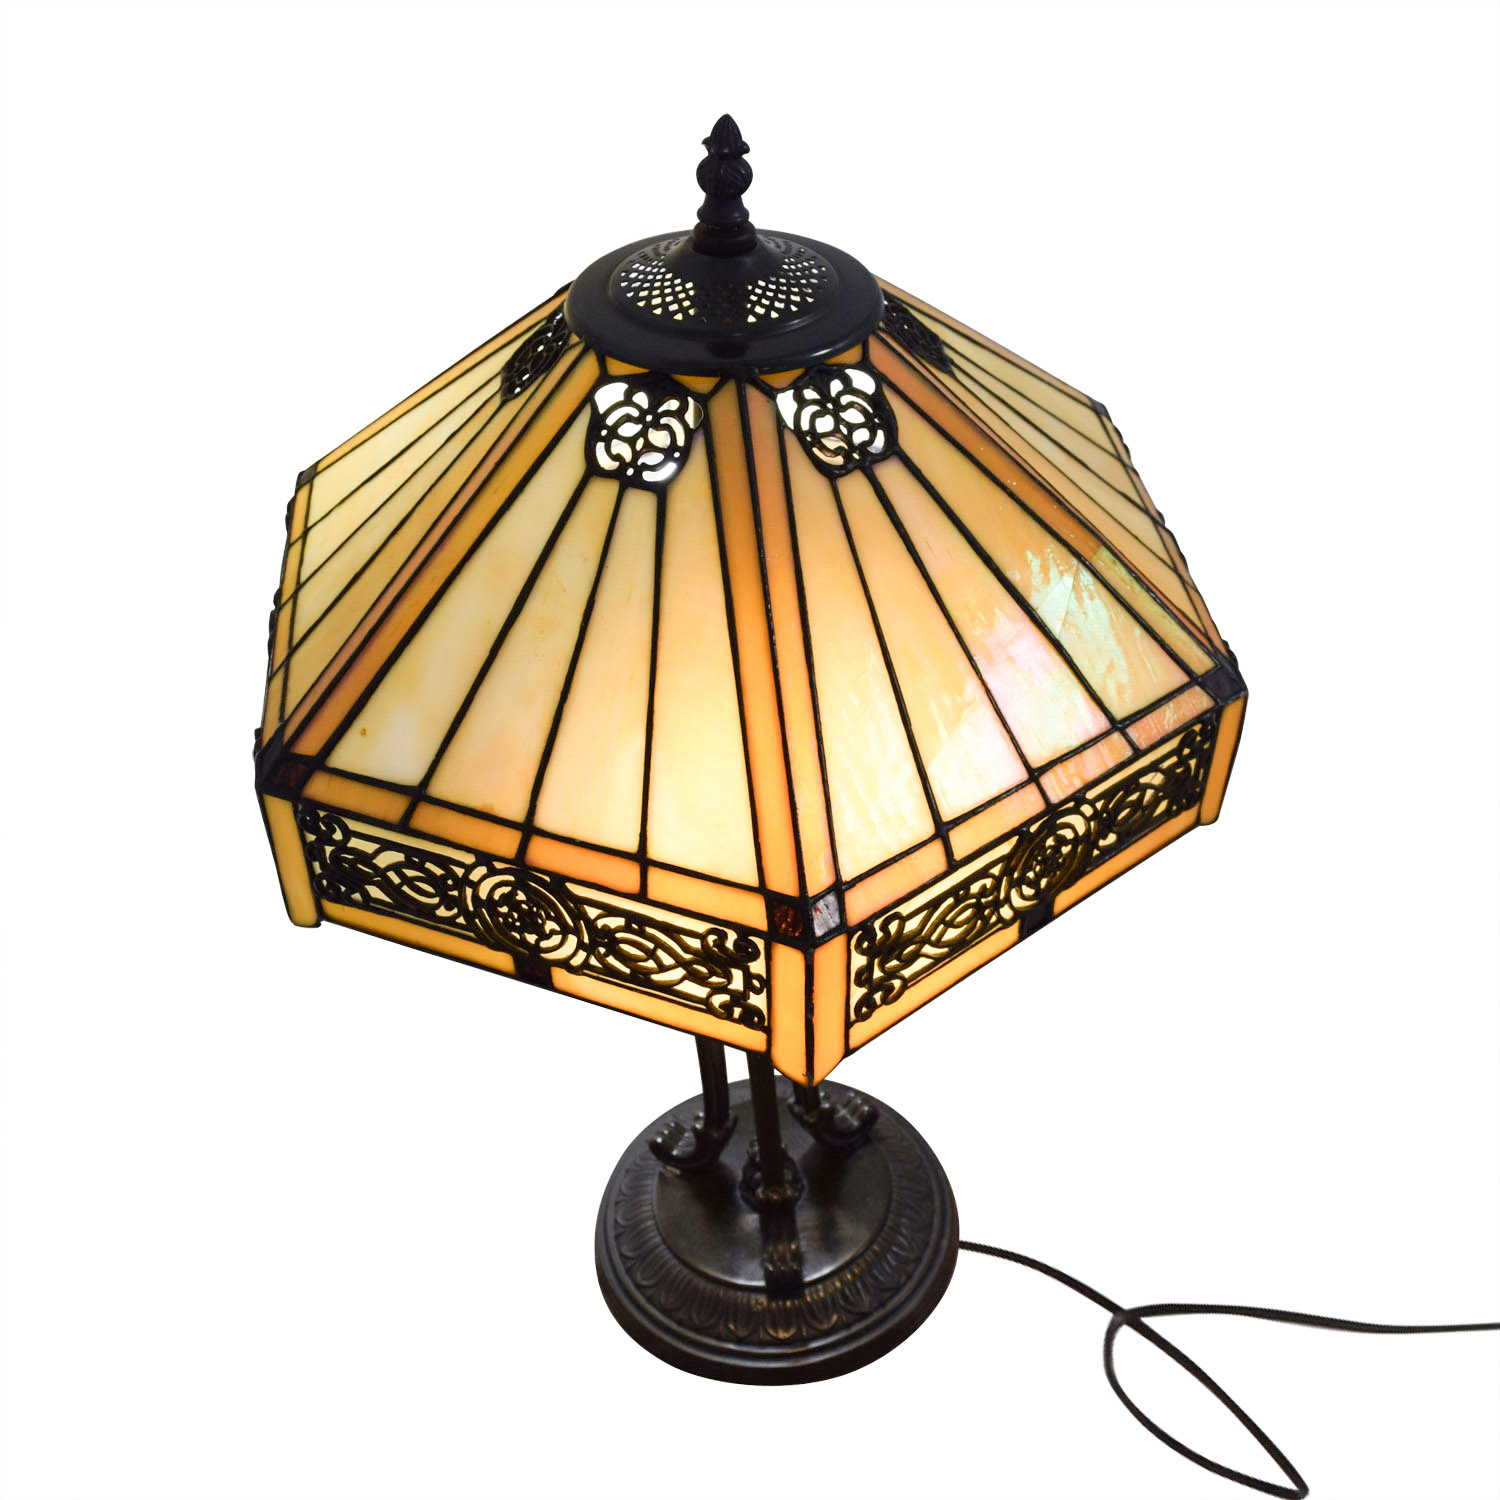 83 off stained glass tiffany style side table lamp decor Tiffany style table lamp